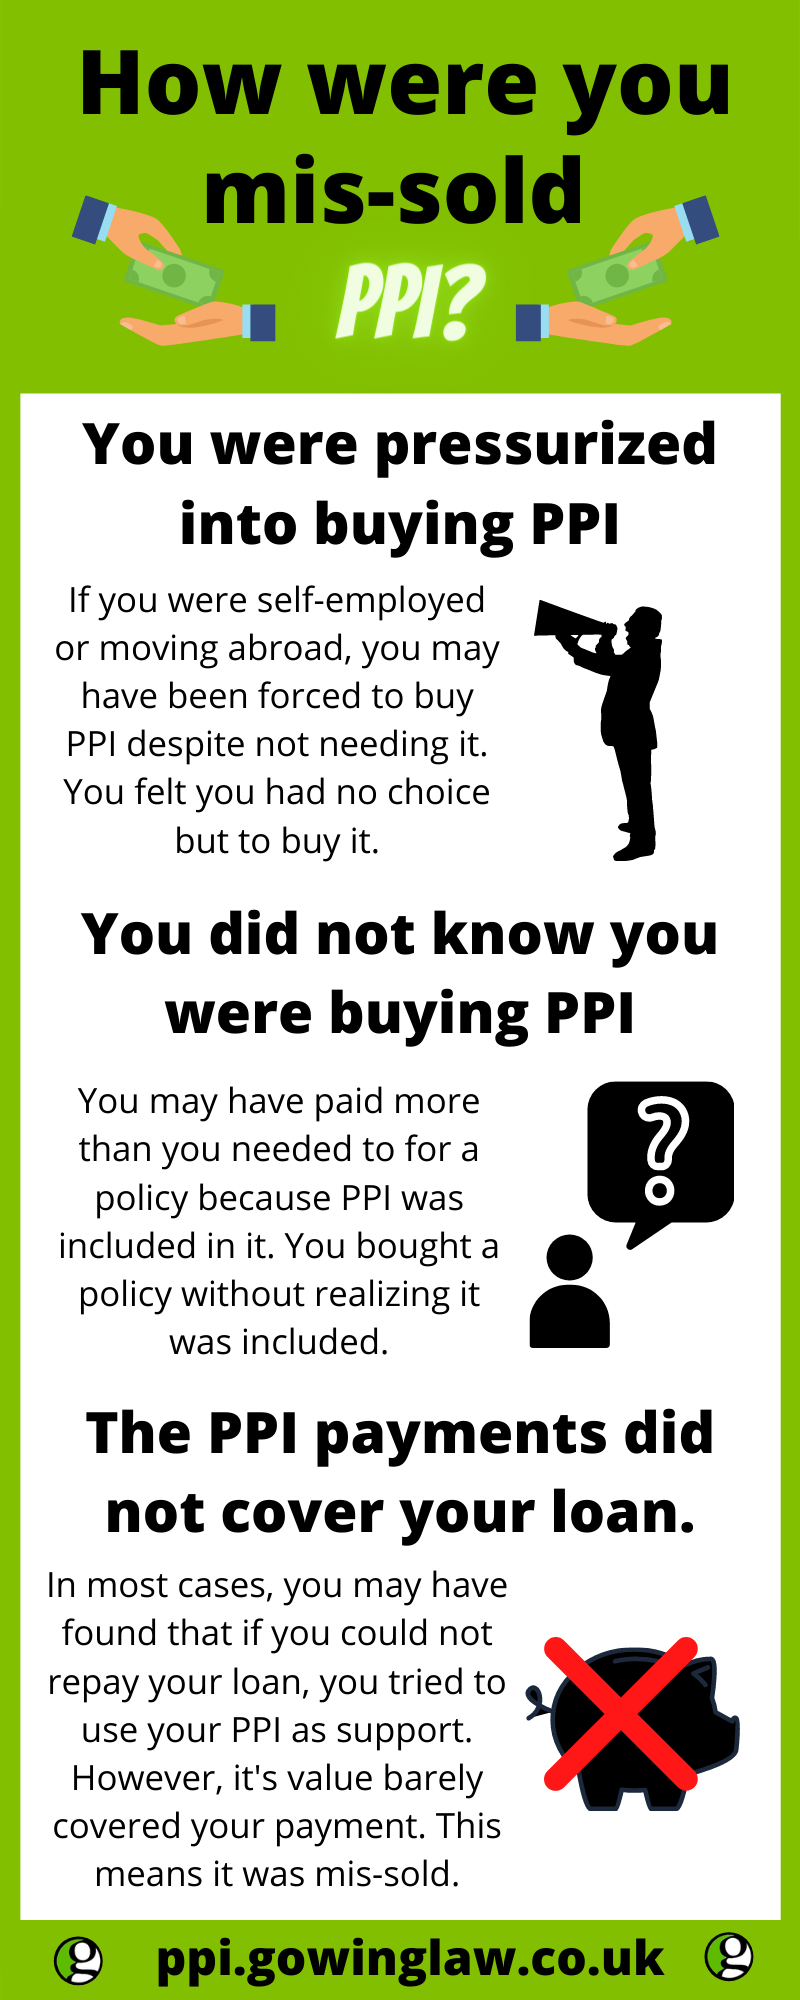 Mis-sold PPI claims